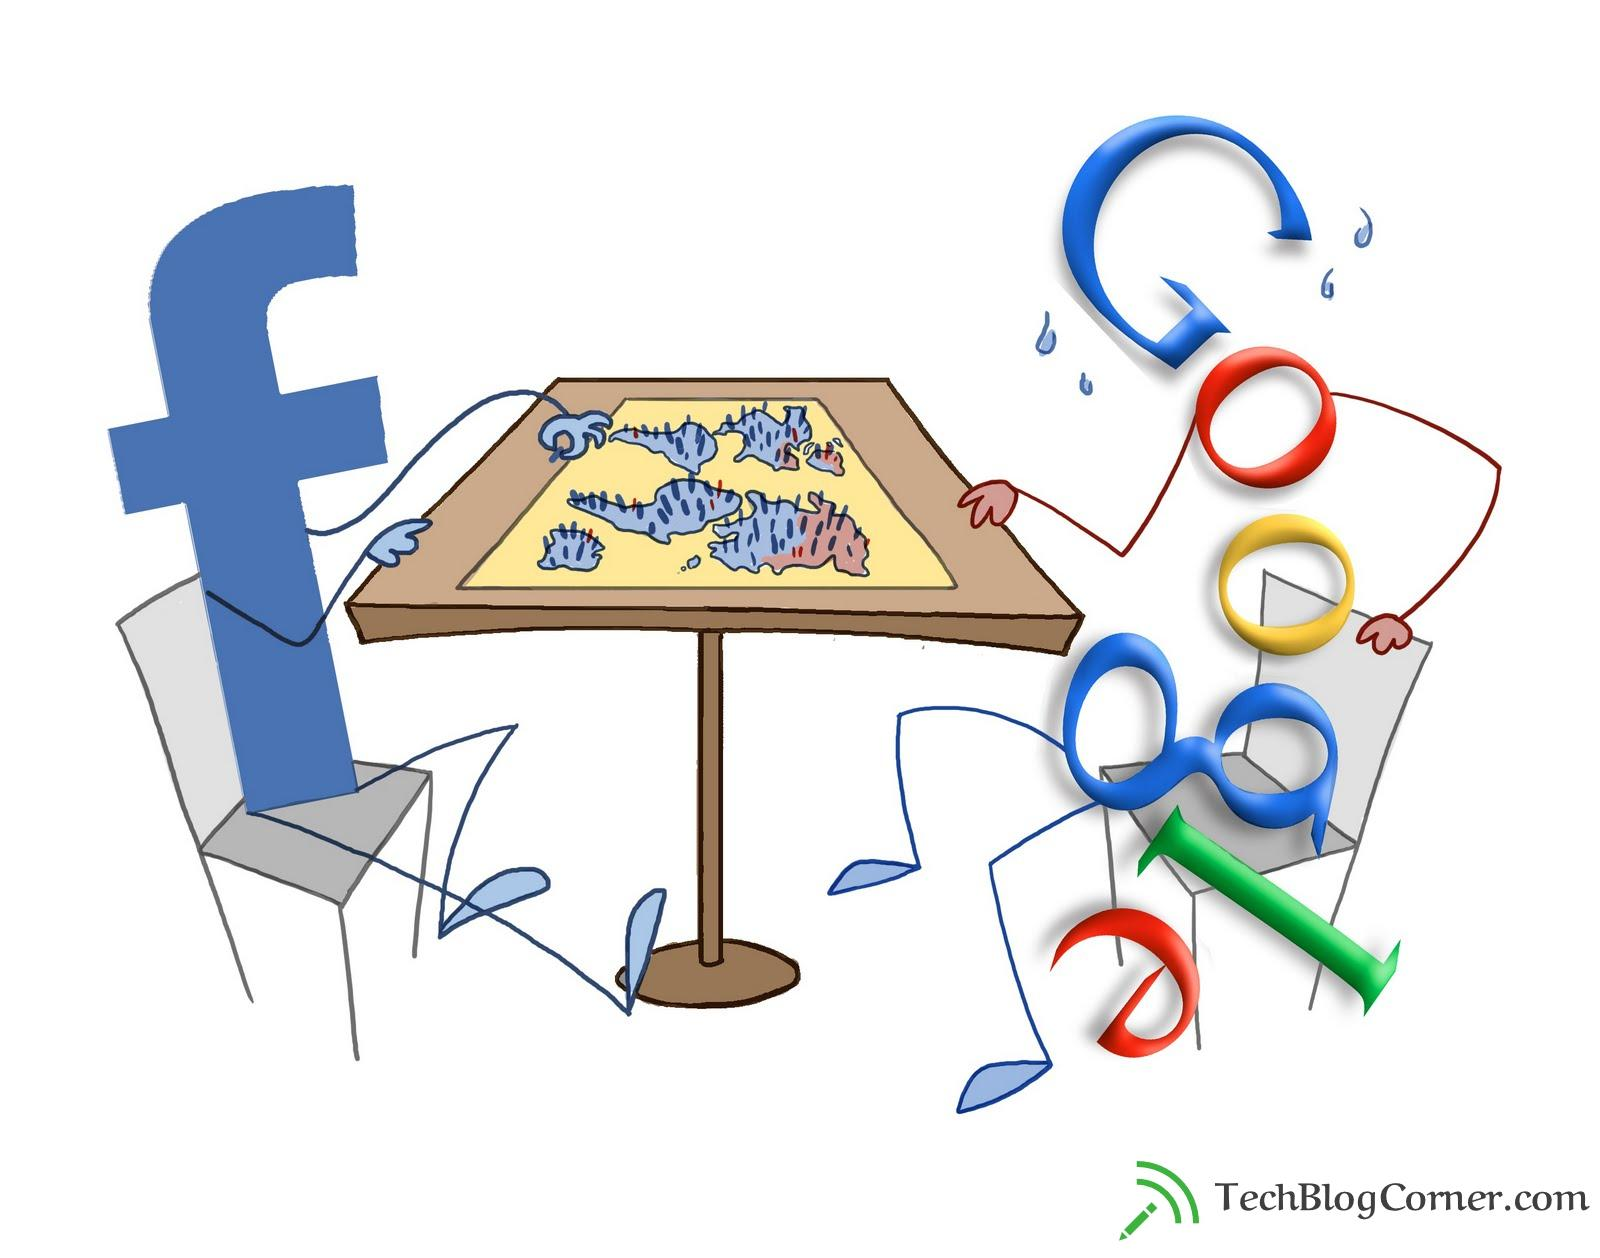 facebook-vs-google-online-techblogcorner